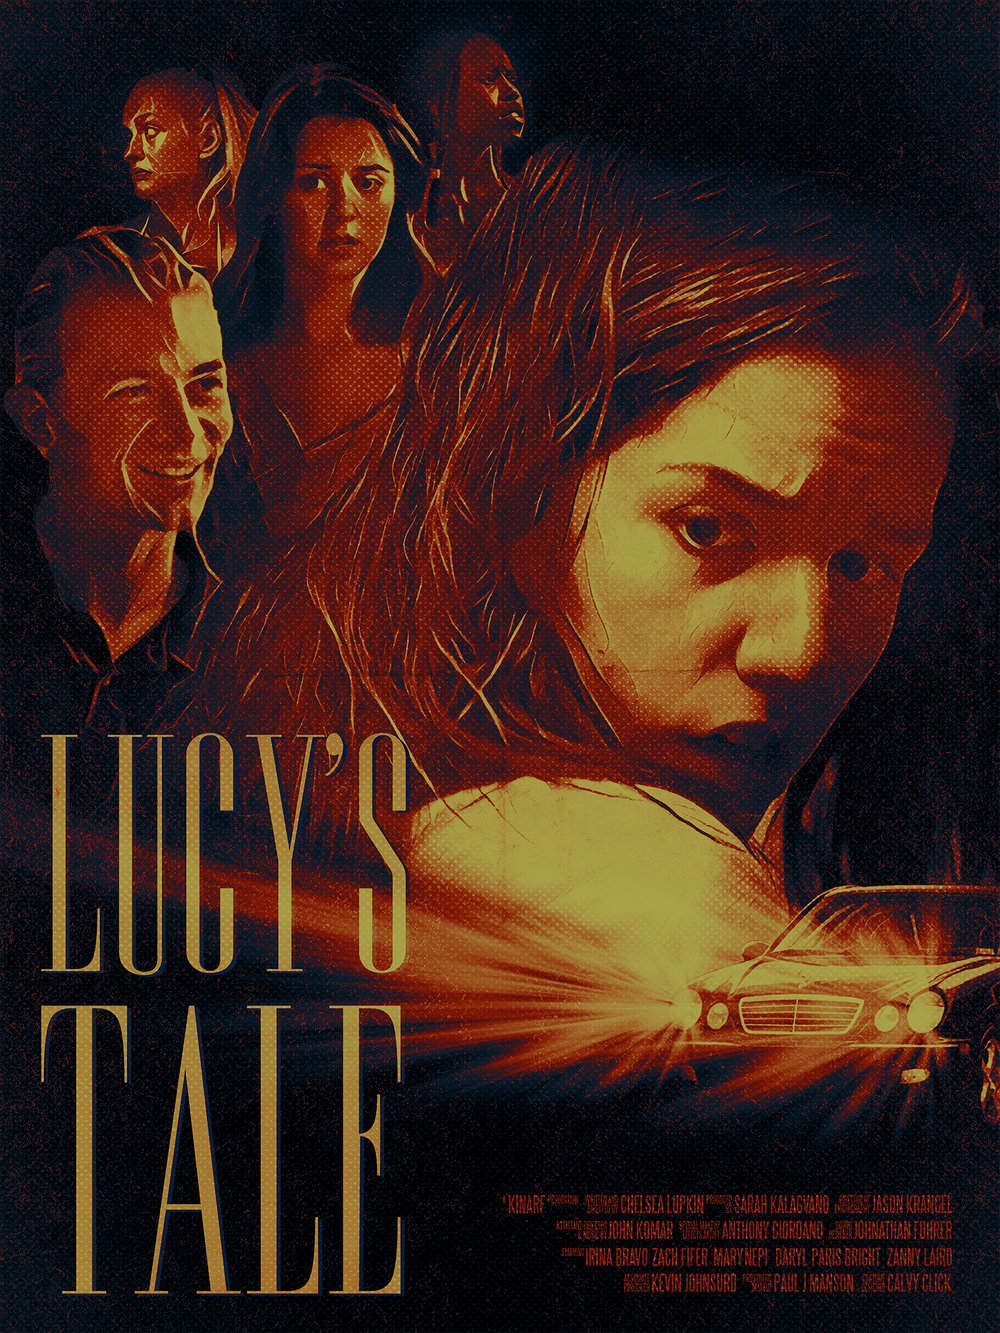 LUCY'S TALE: A SHORT HORROR - Between mean girls, her first romance, and budding hormones, Lucy begins to realize that she's not quite like the other teenagers in her class in this coming-of-age horror.